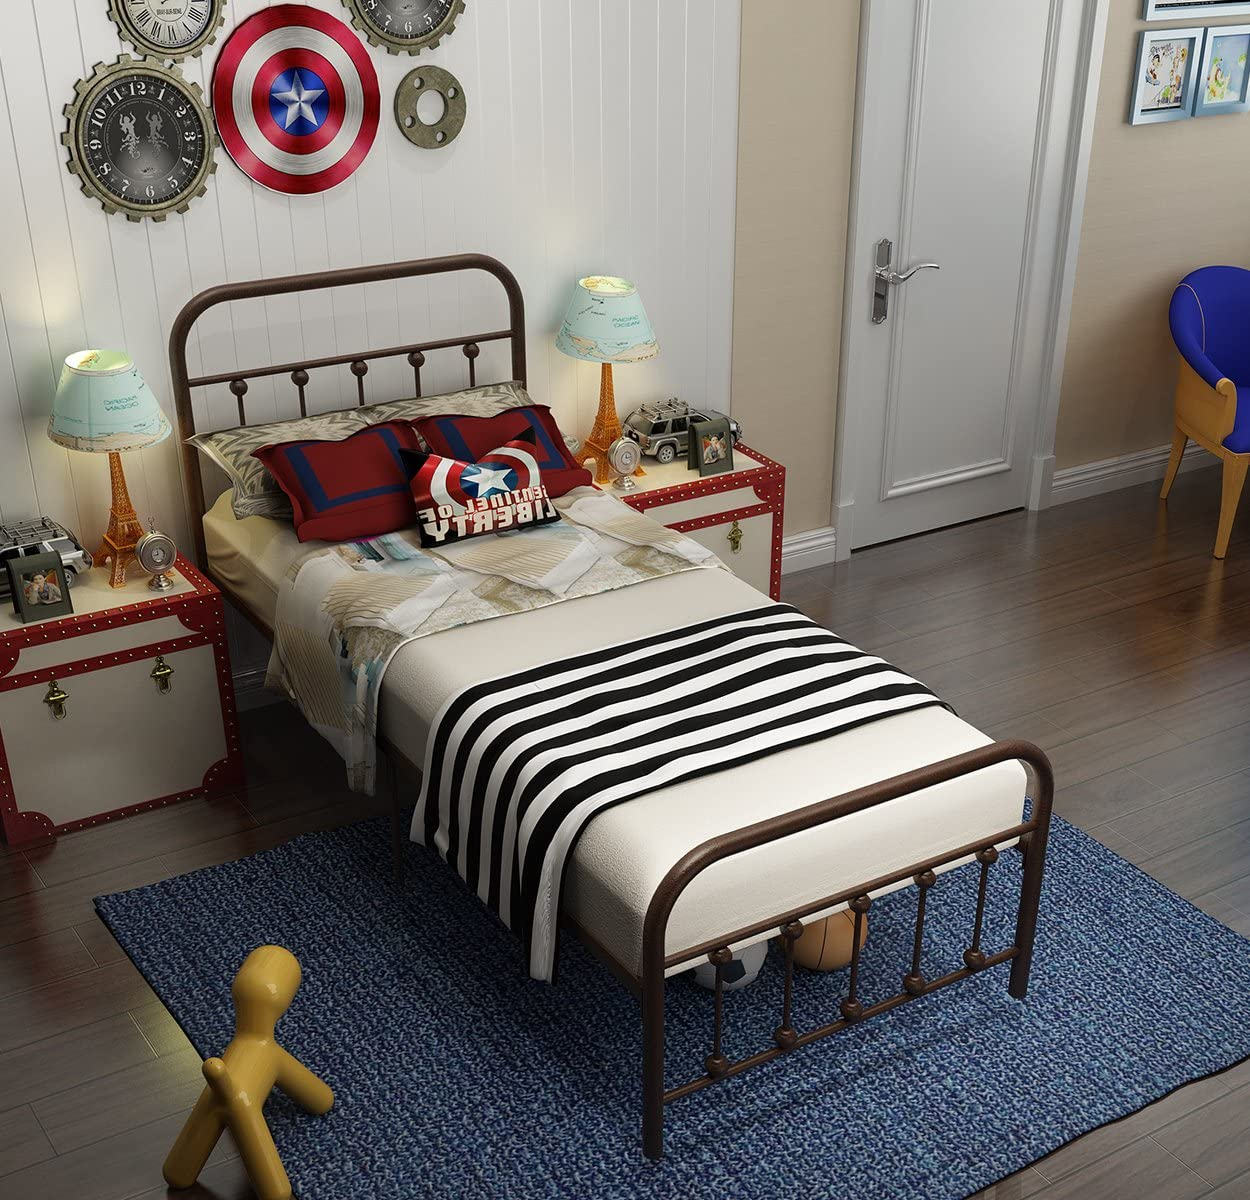 TEMMER Reinforced Metal Bed Frame Twin Size with Headboard and Stable Metal Slats Boxspring Replacement Footboard Single Platform Mattress Base,Metal Tube and Antique Brown Baking Paint.